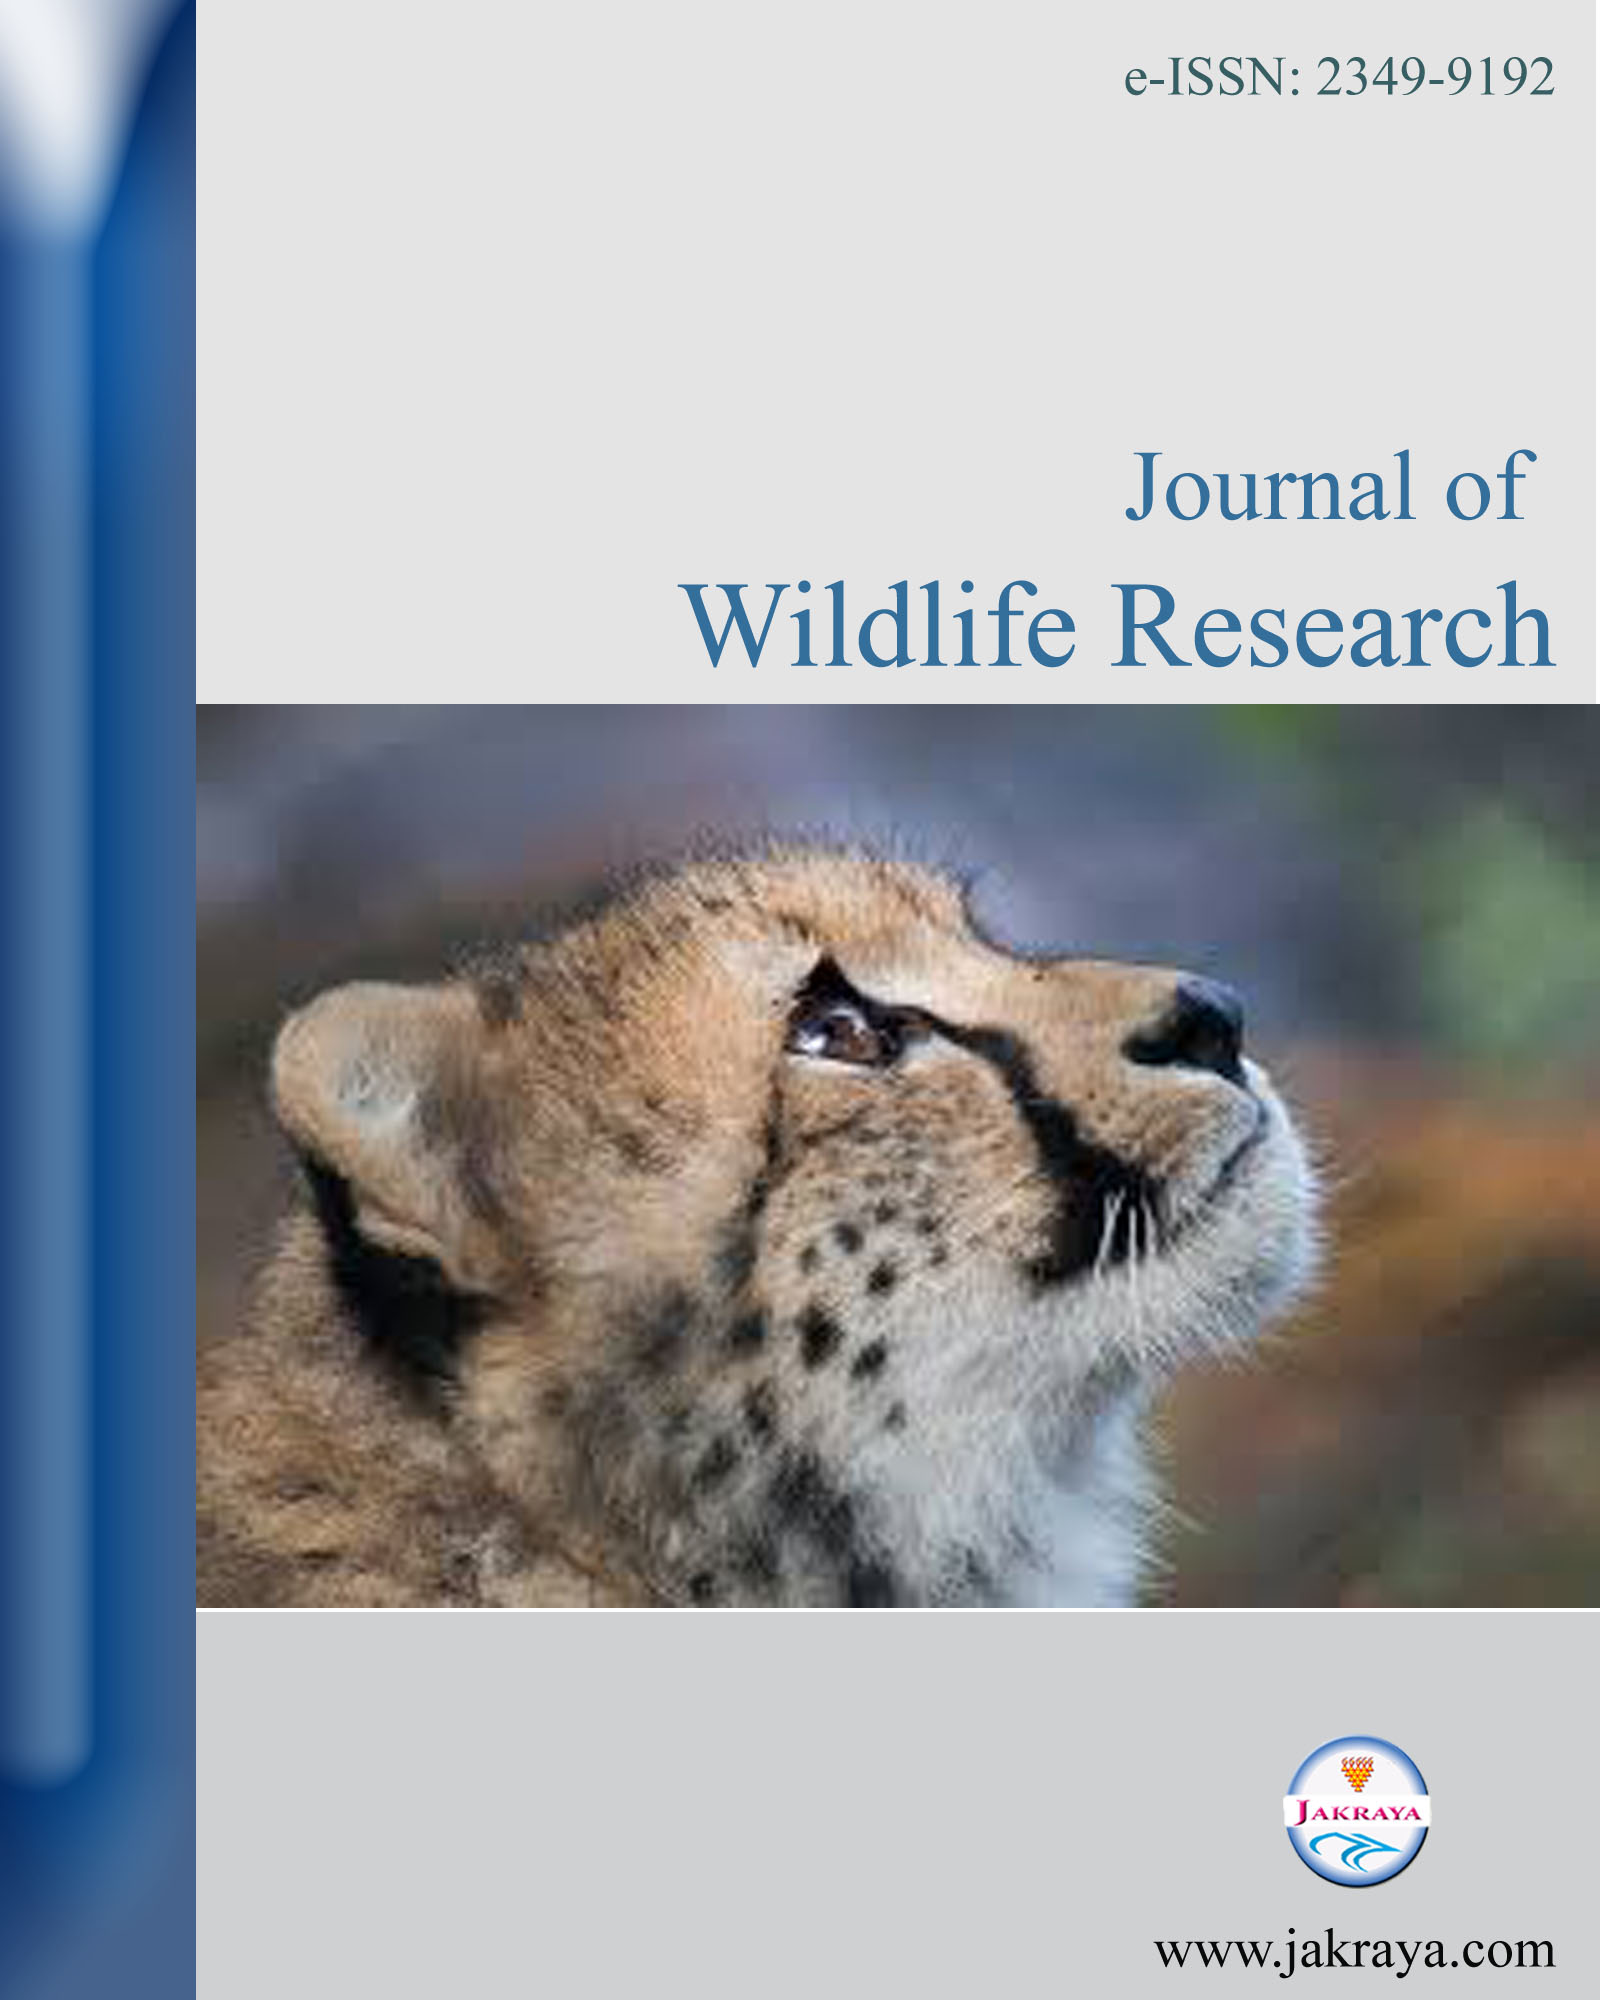 Journal of Wildlife Research